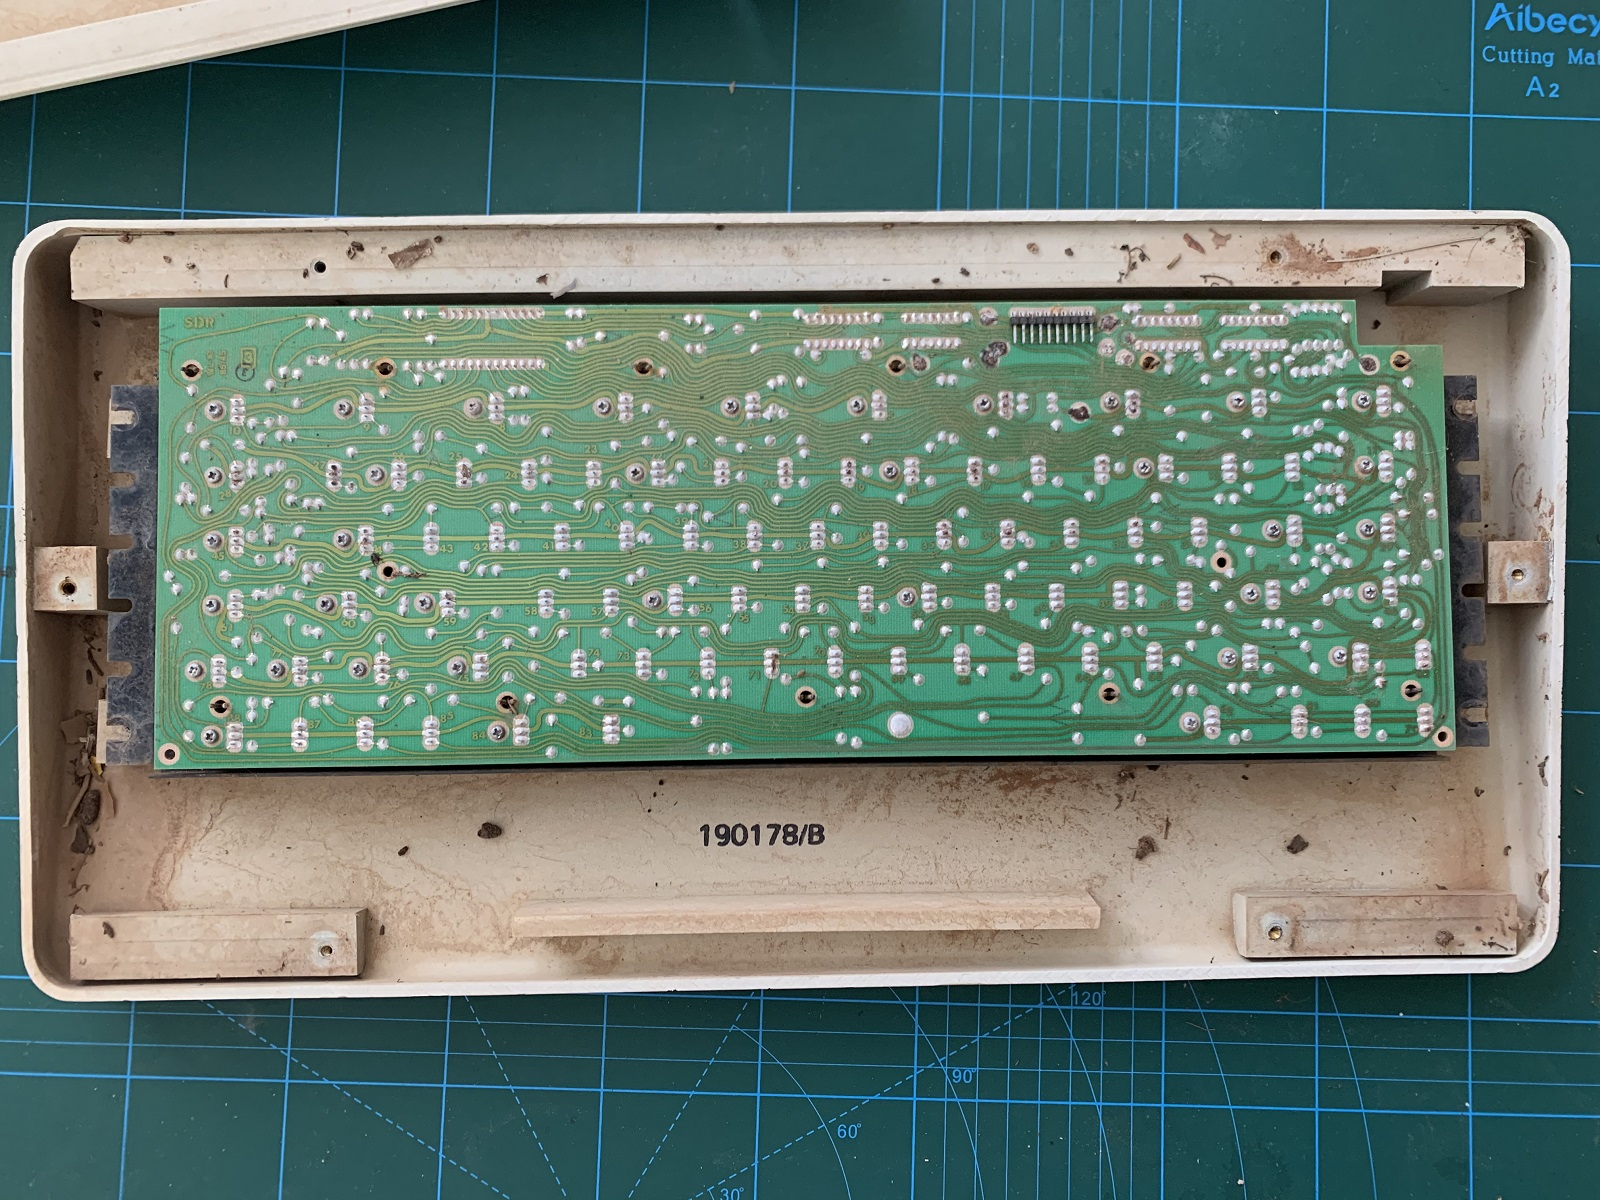 Keyboard mechanism PCB